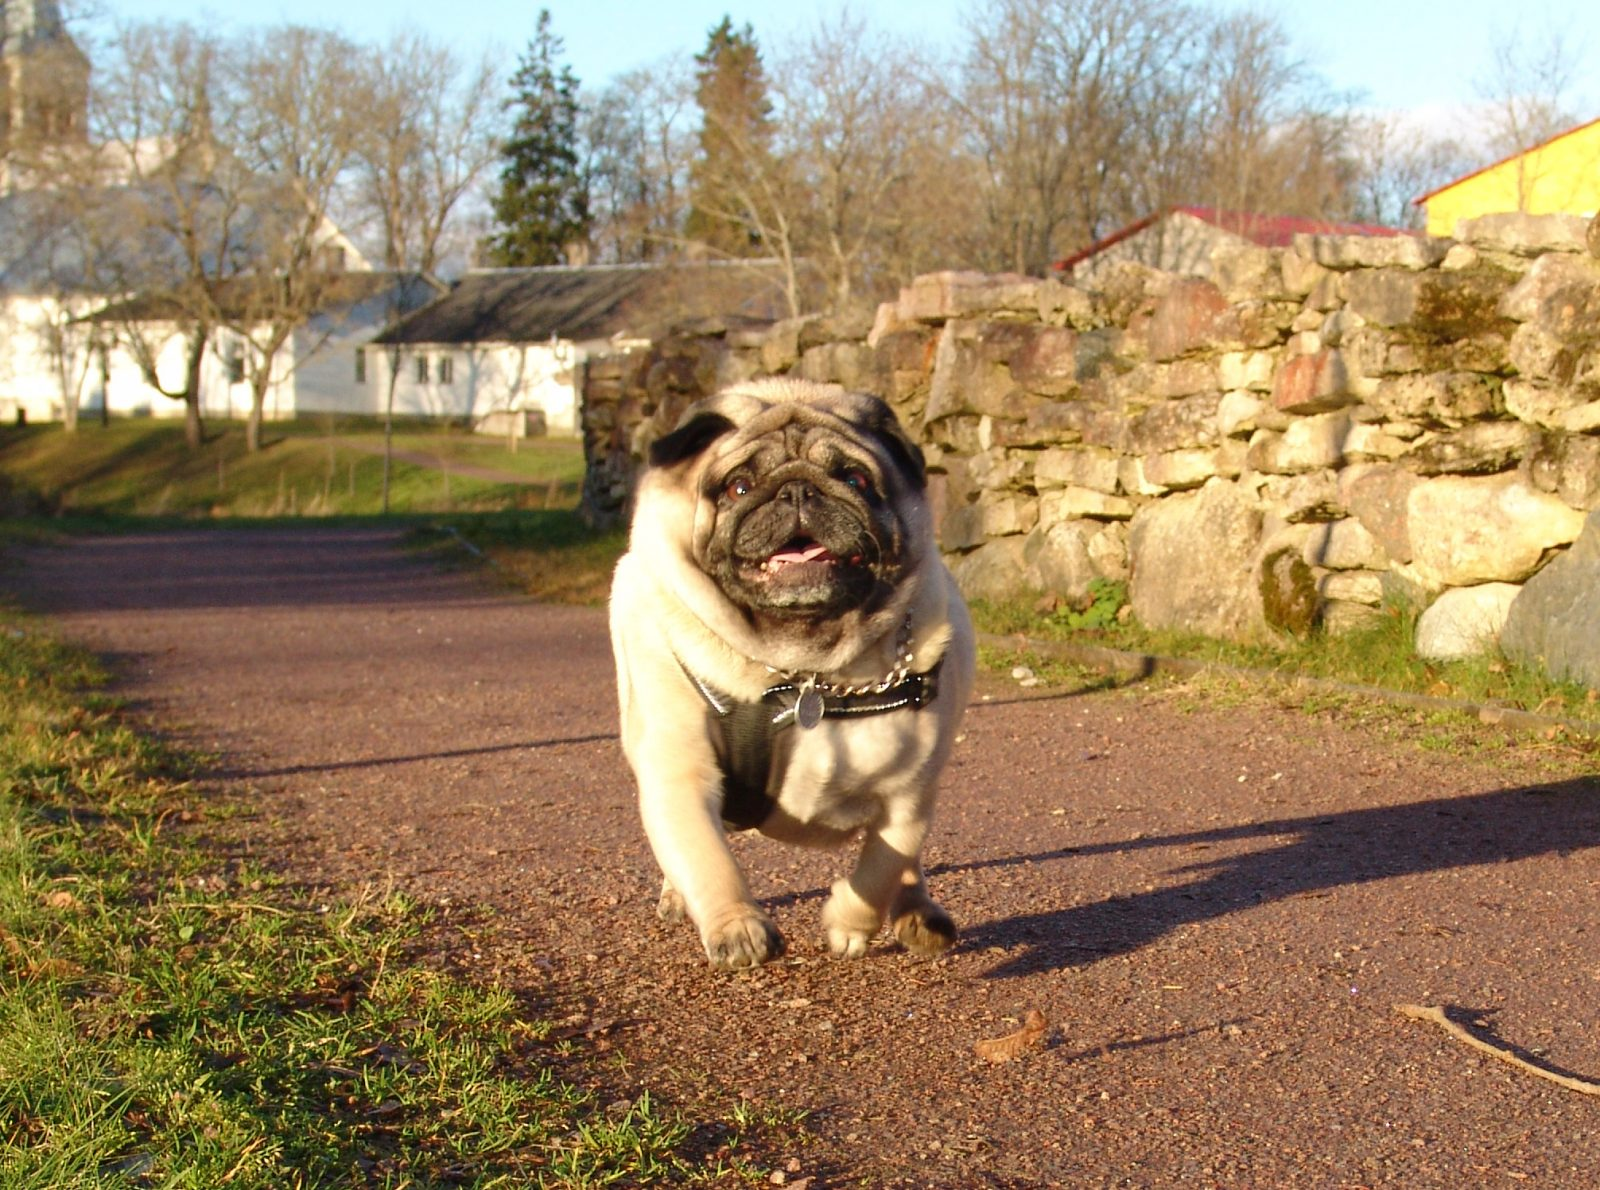 Joyful pug running in a park in the town of Rapla